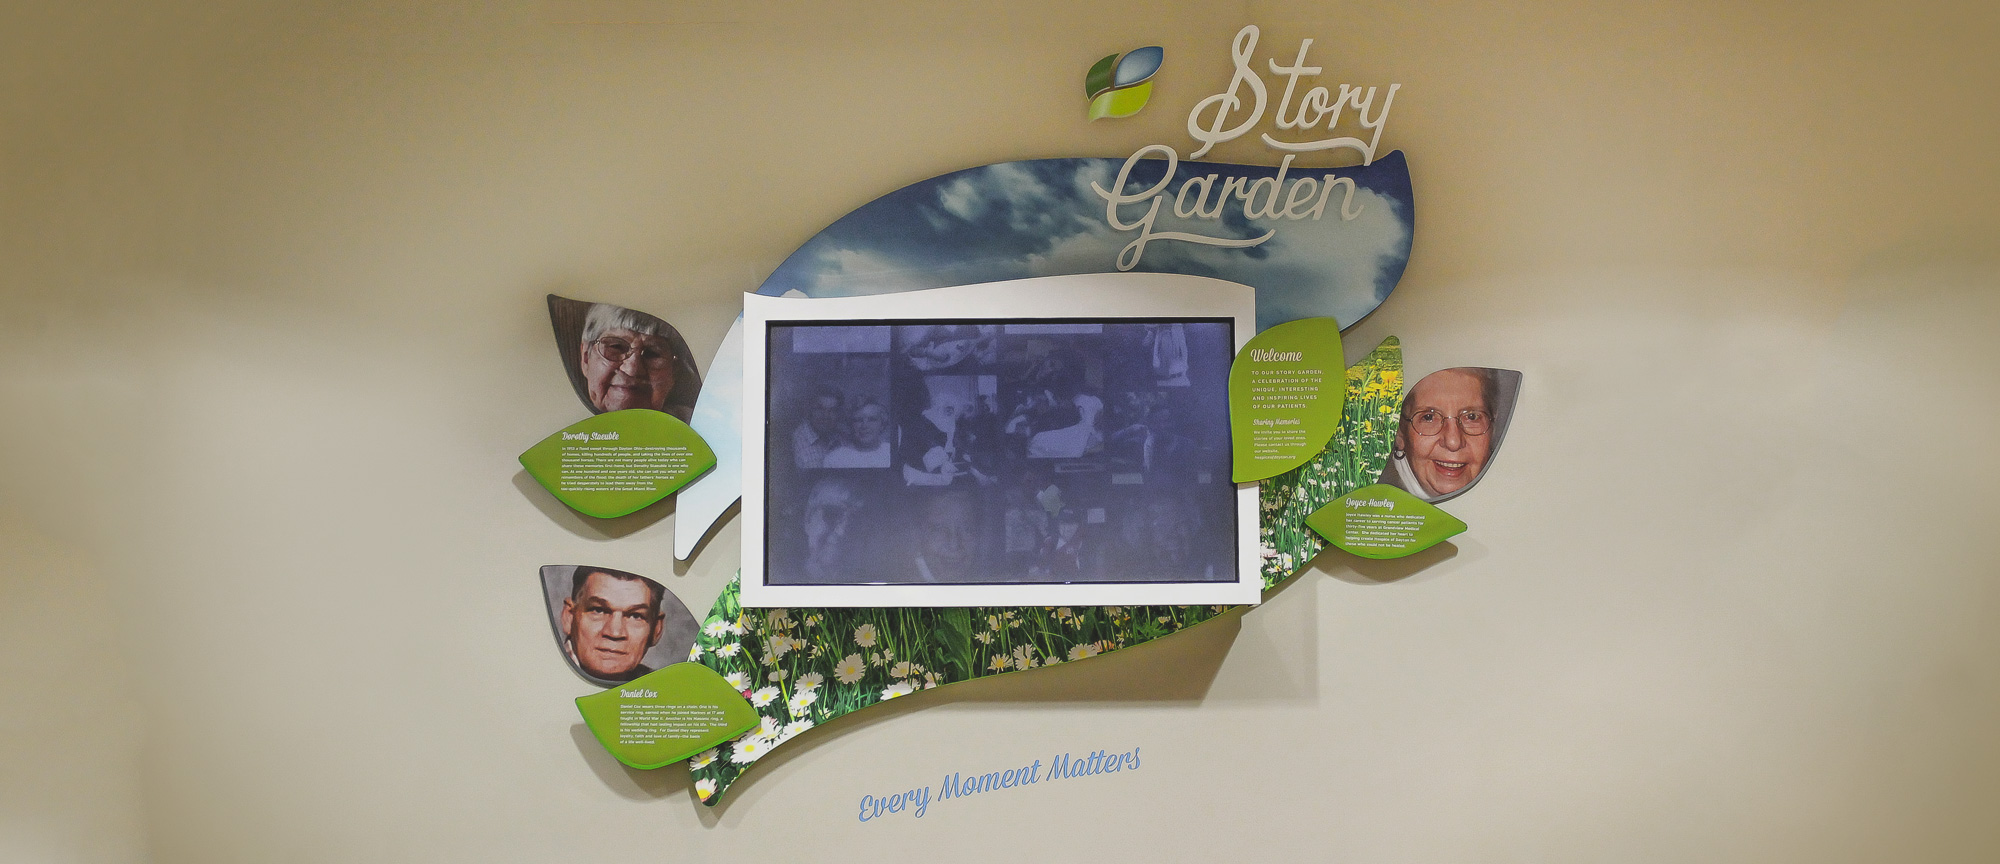 HOD-story-garden-project-image3